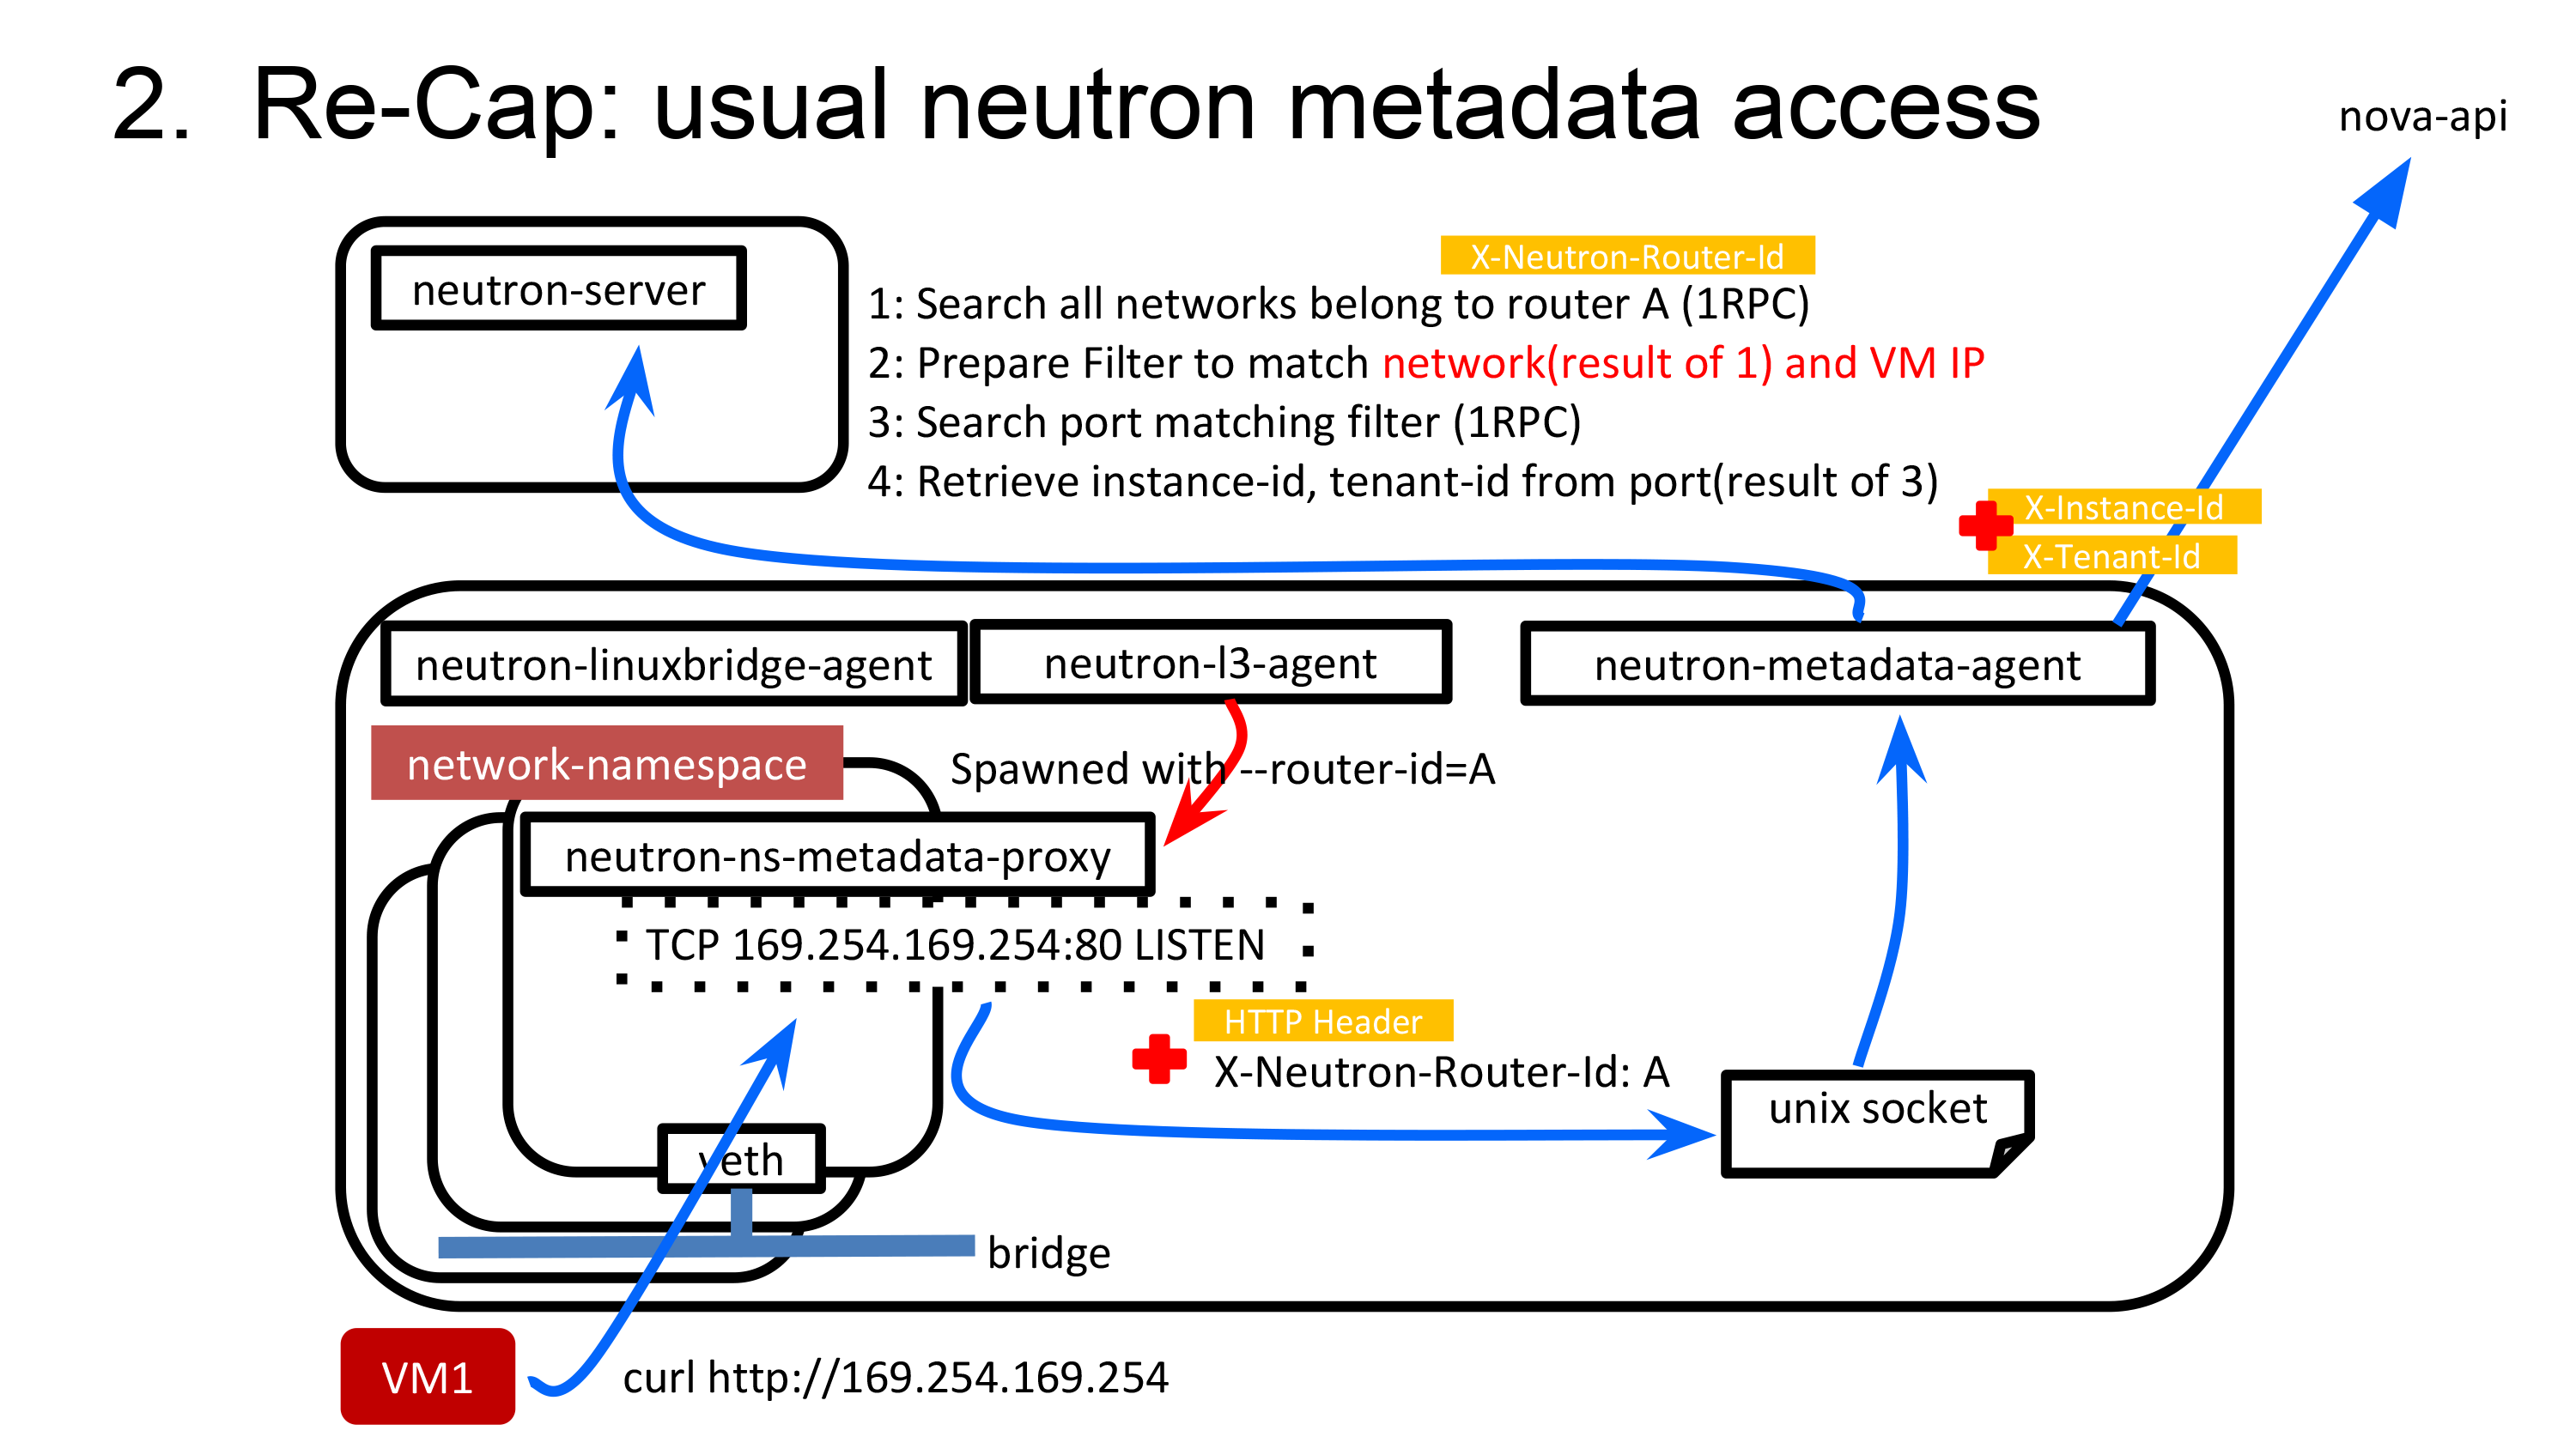 Recap: Usual Neutron Medata access